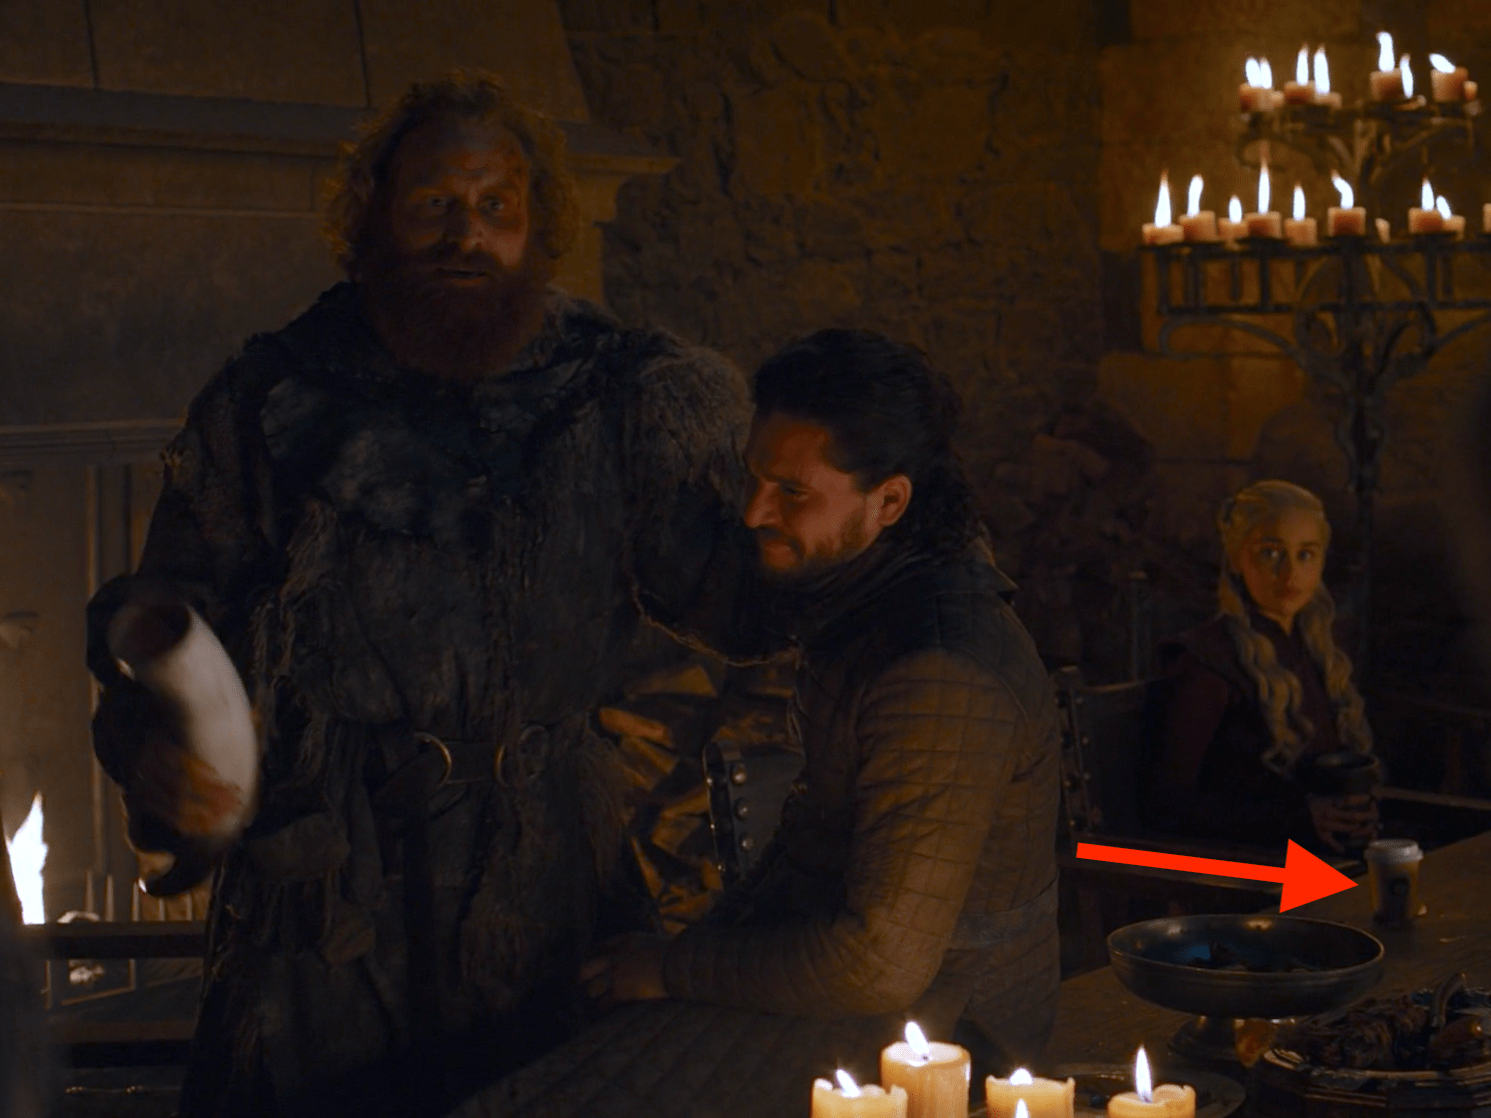 game of thrones fans spot coffee cup